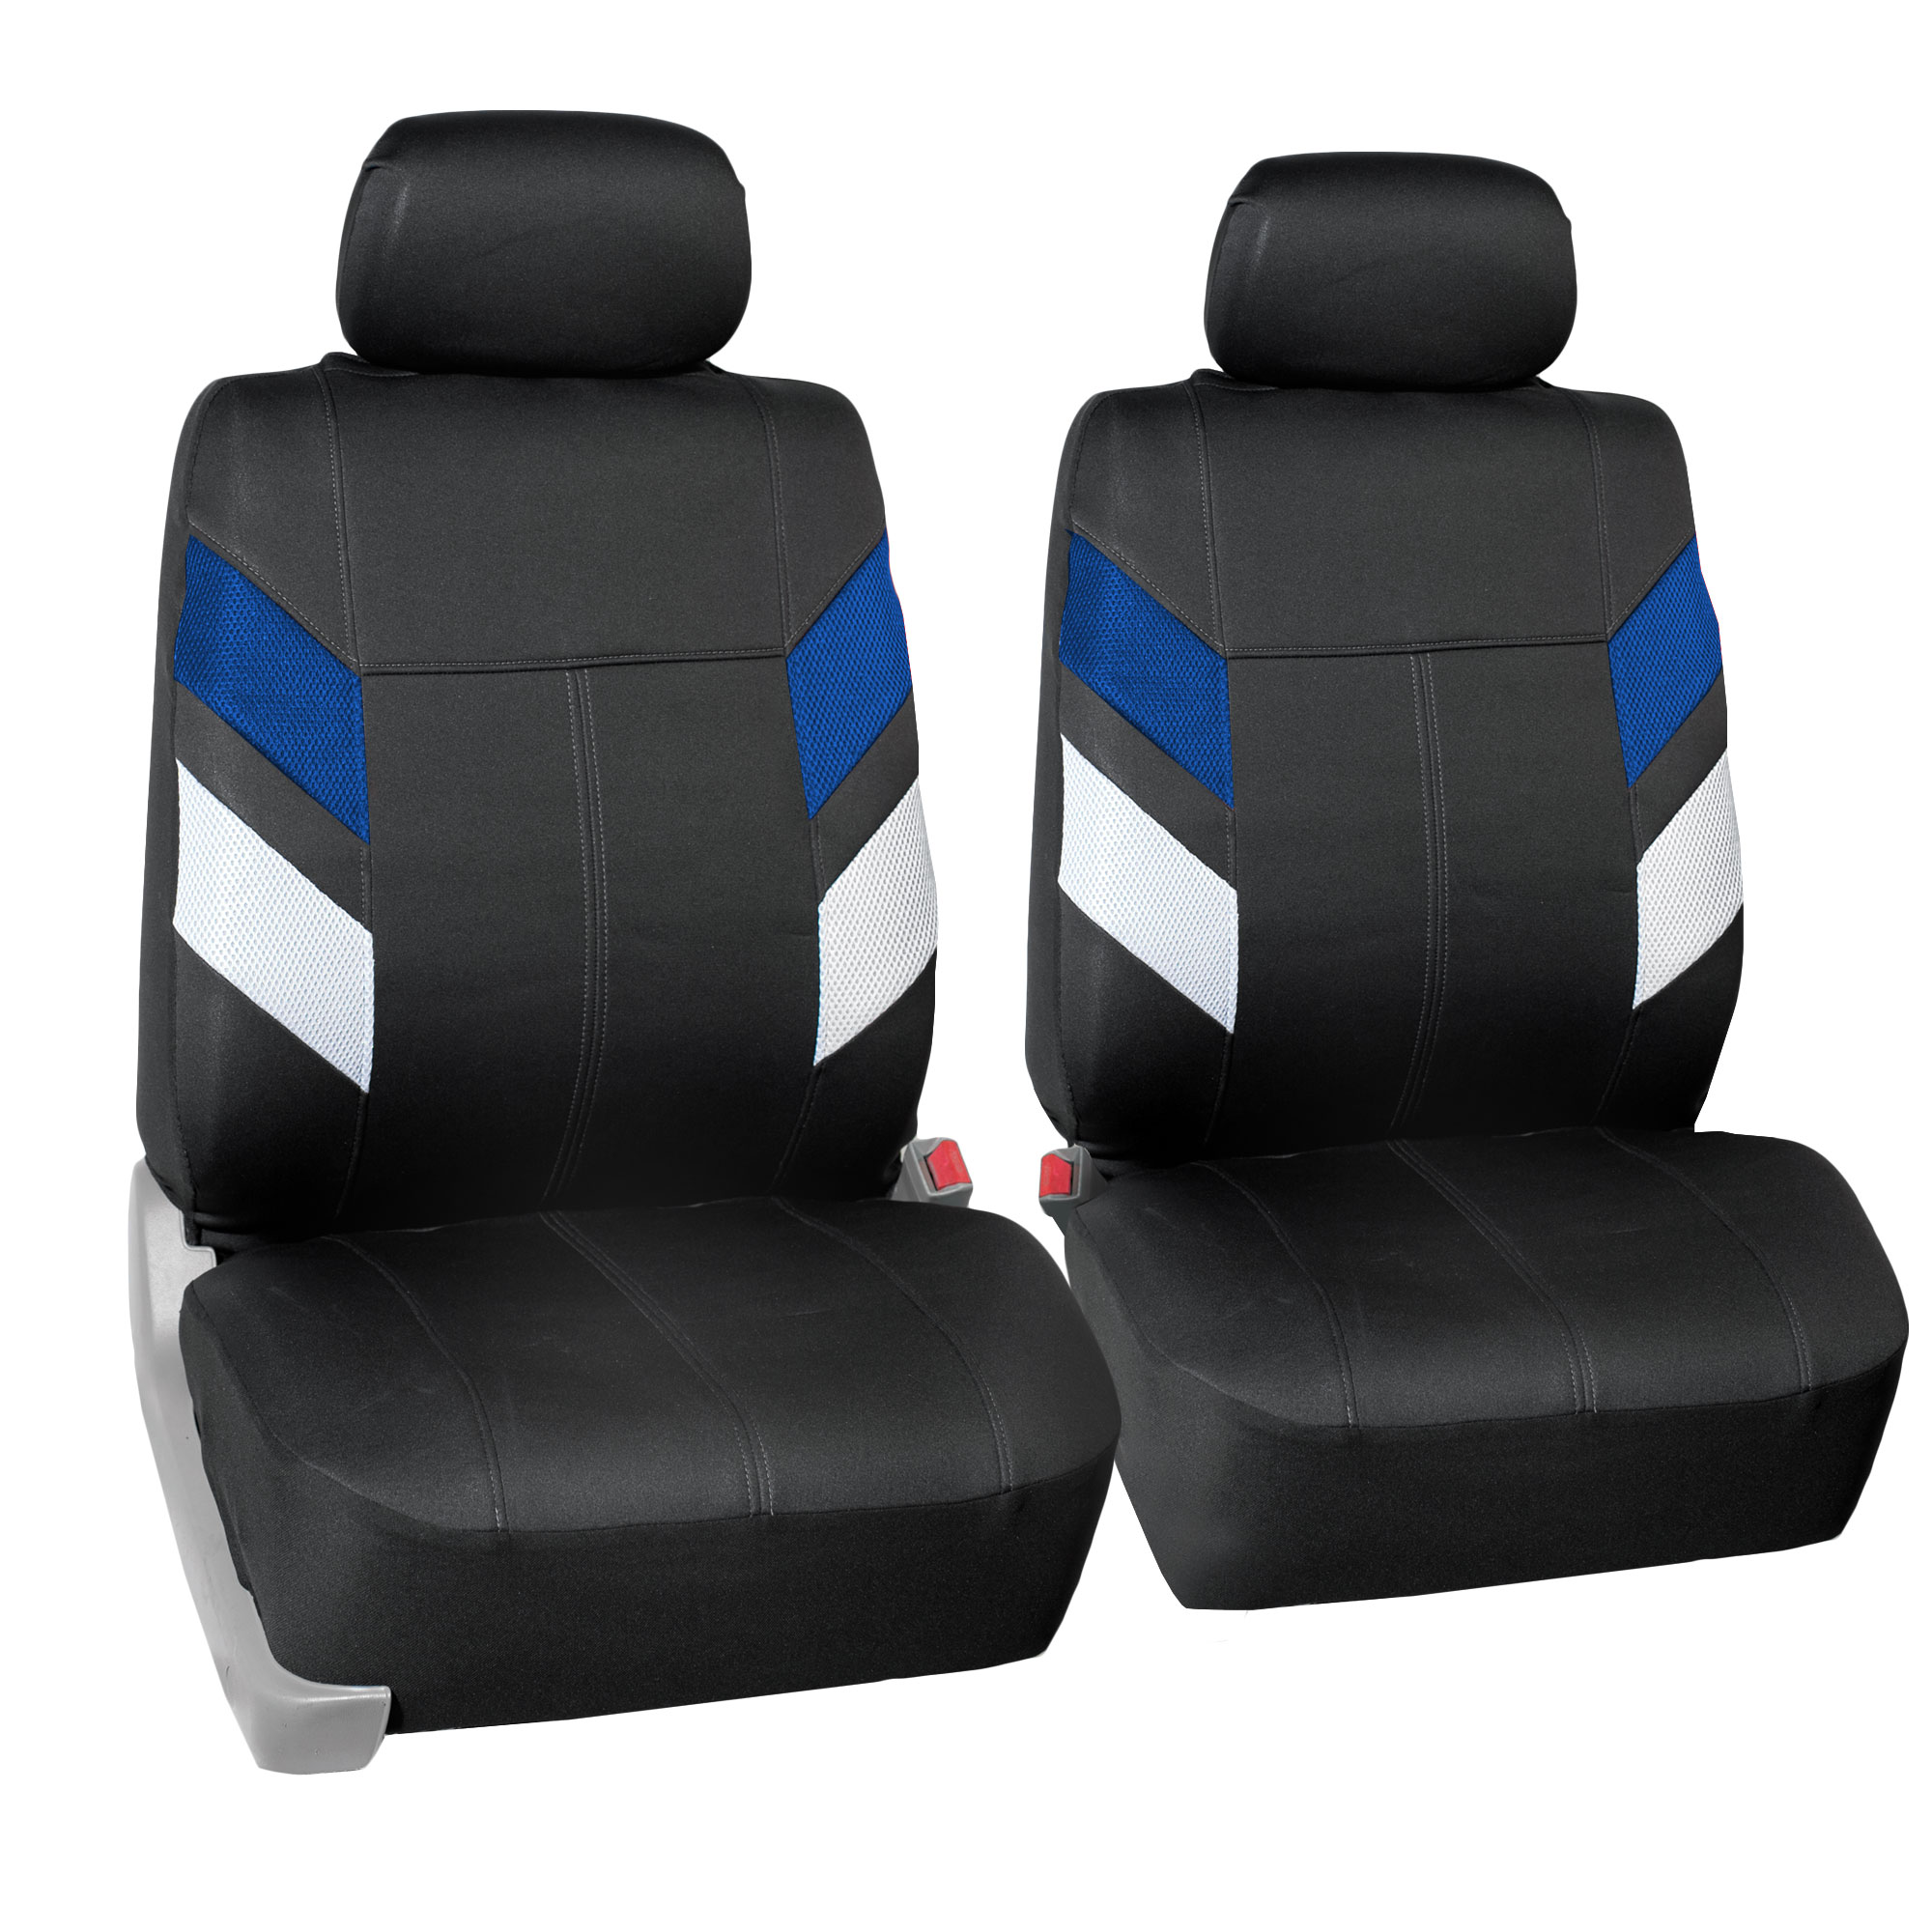 FH Group, Neoprene Car Seat Covers for Auto Car SUV Van Front Bucket 12 Colors